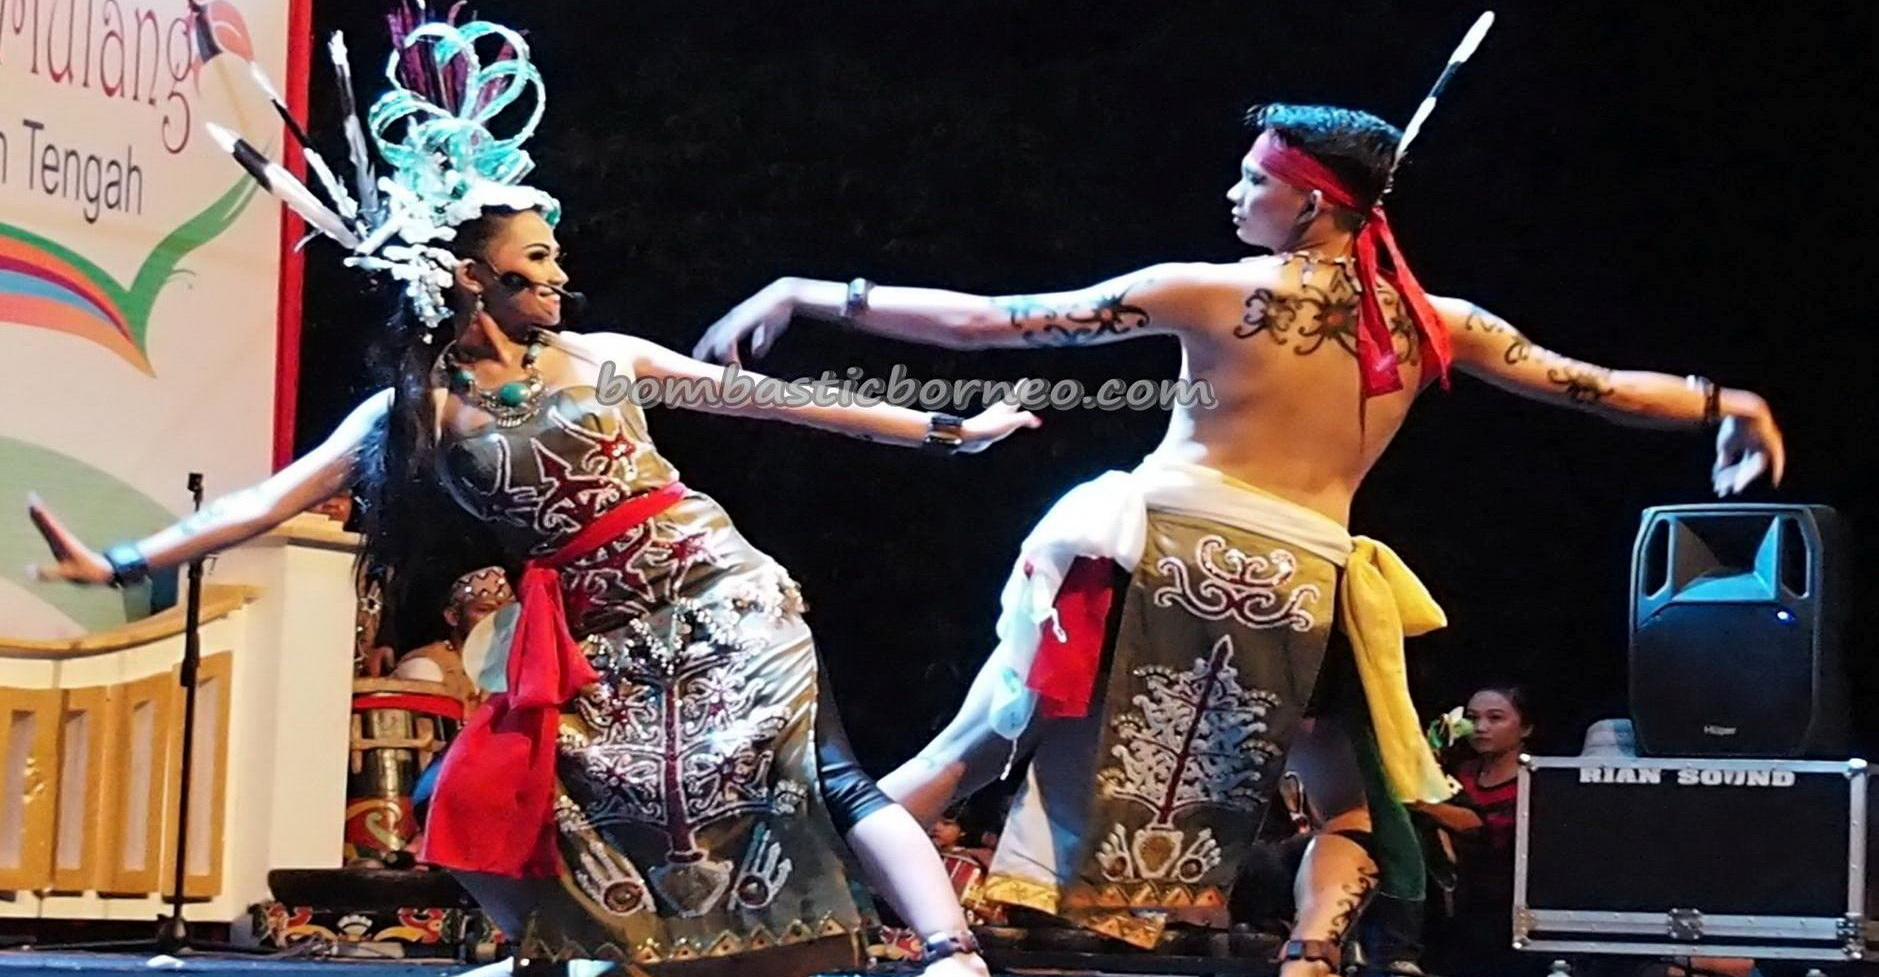 Lomba Jagau, Isen Mulang, Indigenous, cultural dance, Festival Budaya, event, Borneo, 中加里曼丹, Indonesia, Palangka Raya, native, Suku Dayak, Pariwisata, traditional, tribal, tribe,